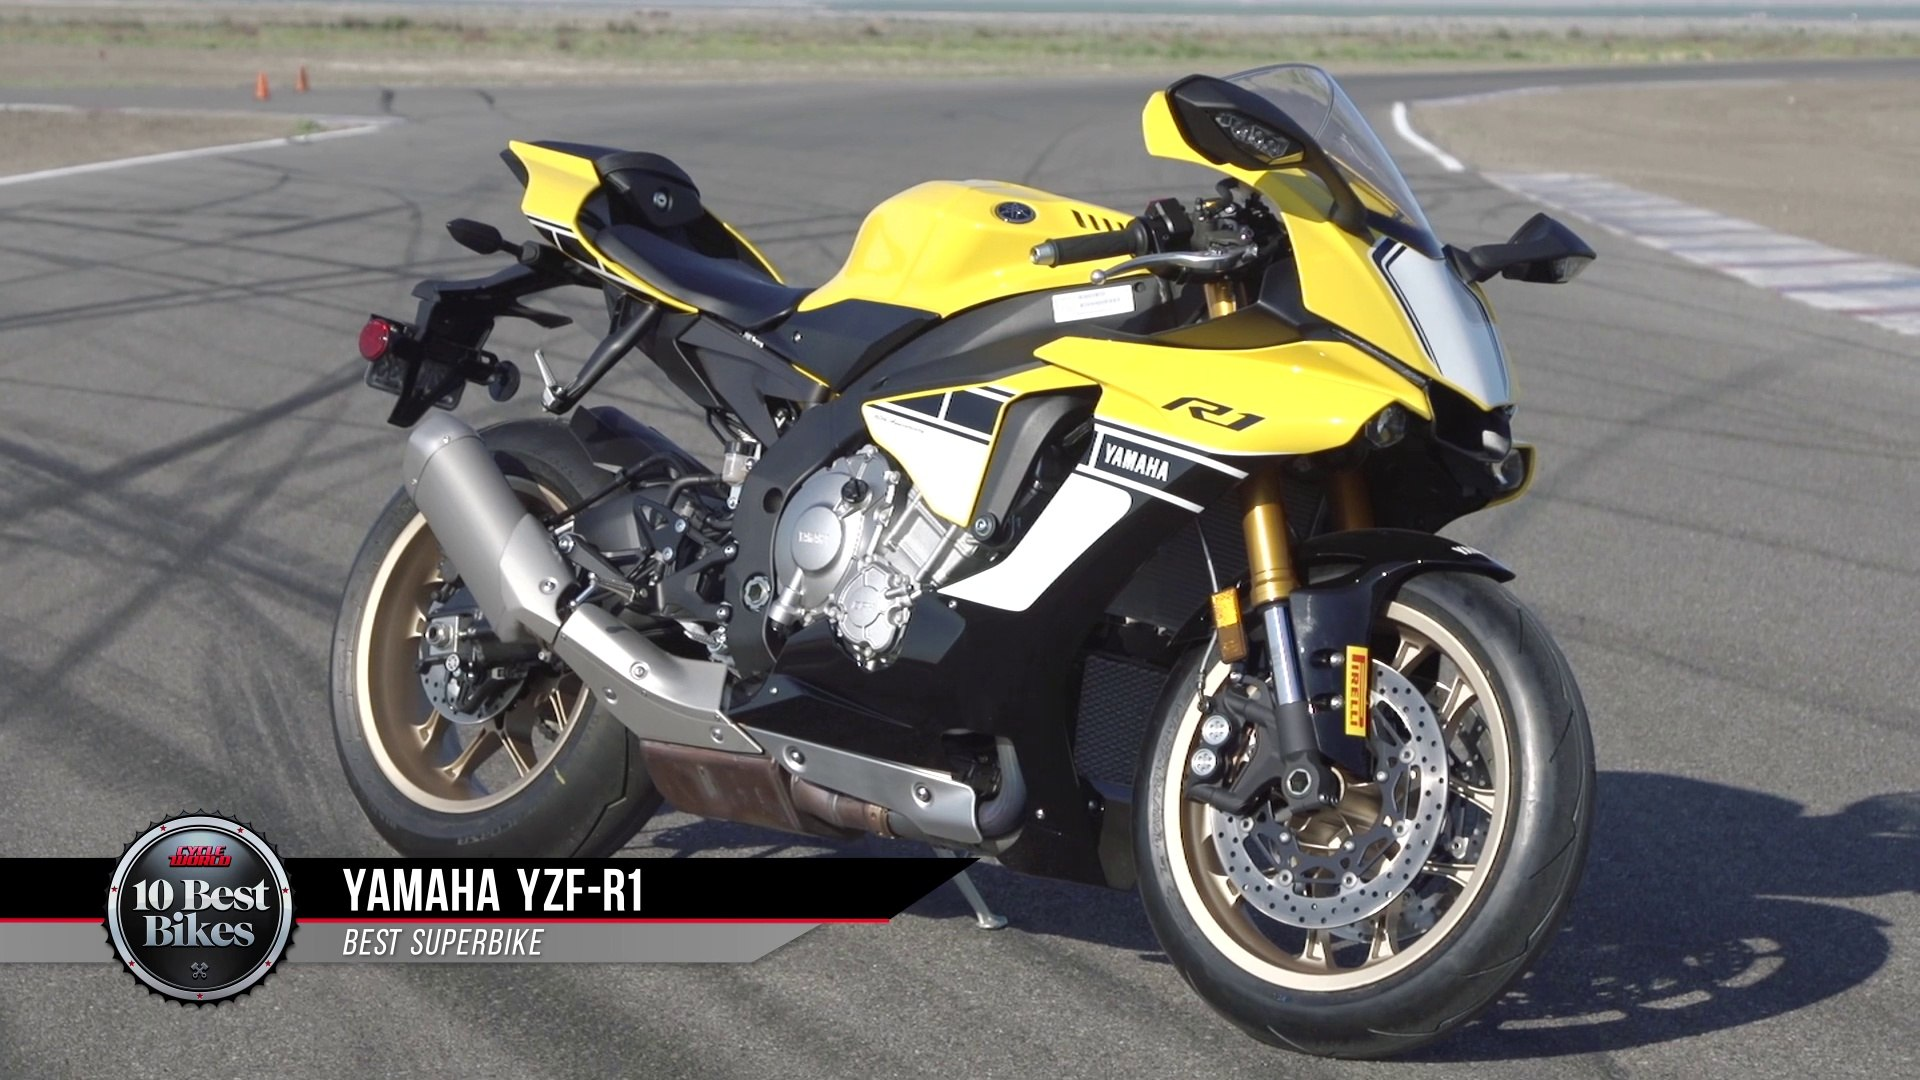 2016 Best Superbike - Yamaha YZF-R1